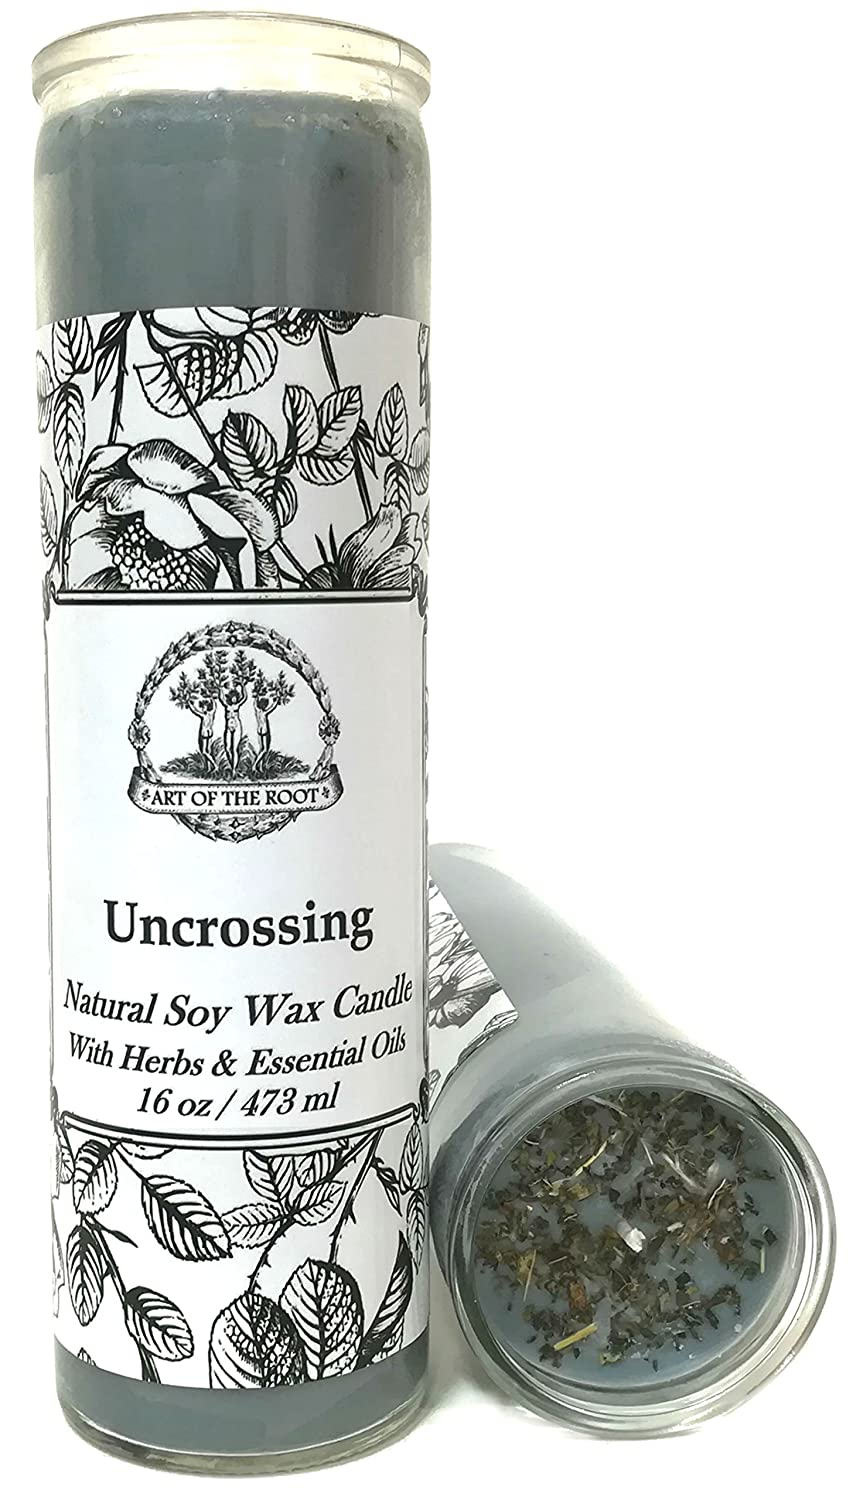 Art of the Root Uncrossing 7 Day SOY Herbal & Scented Spell Candle (Fixed) for Negativity, Spells, Curses, Jinxes, Hexes & Crossed Conditions Wiccan Pagan Conjure Hoodoo Ltd.